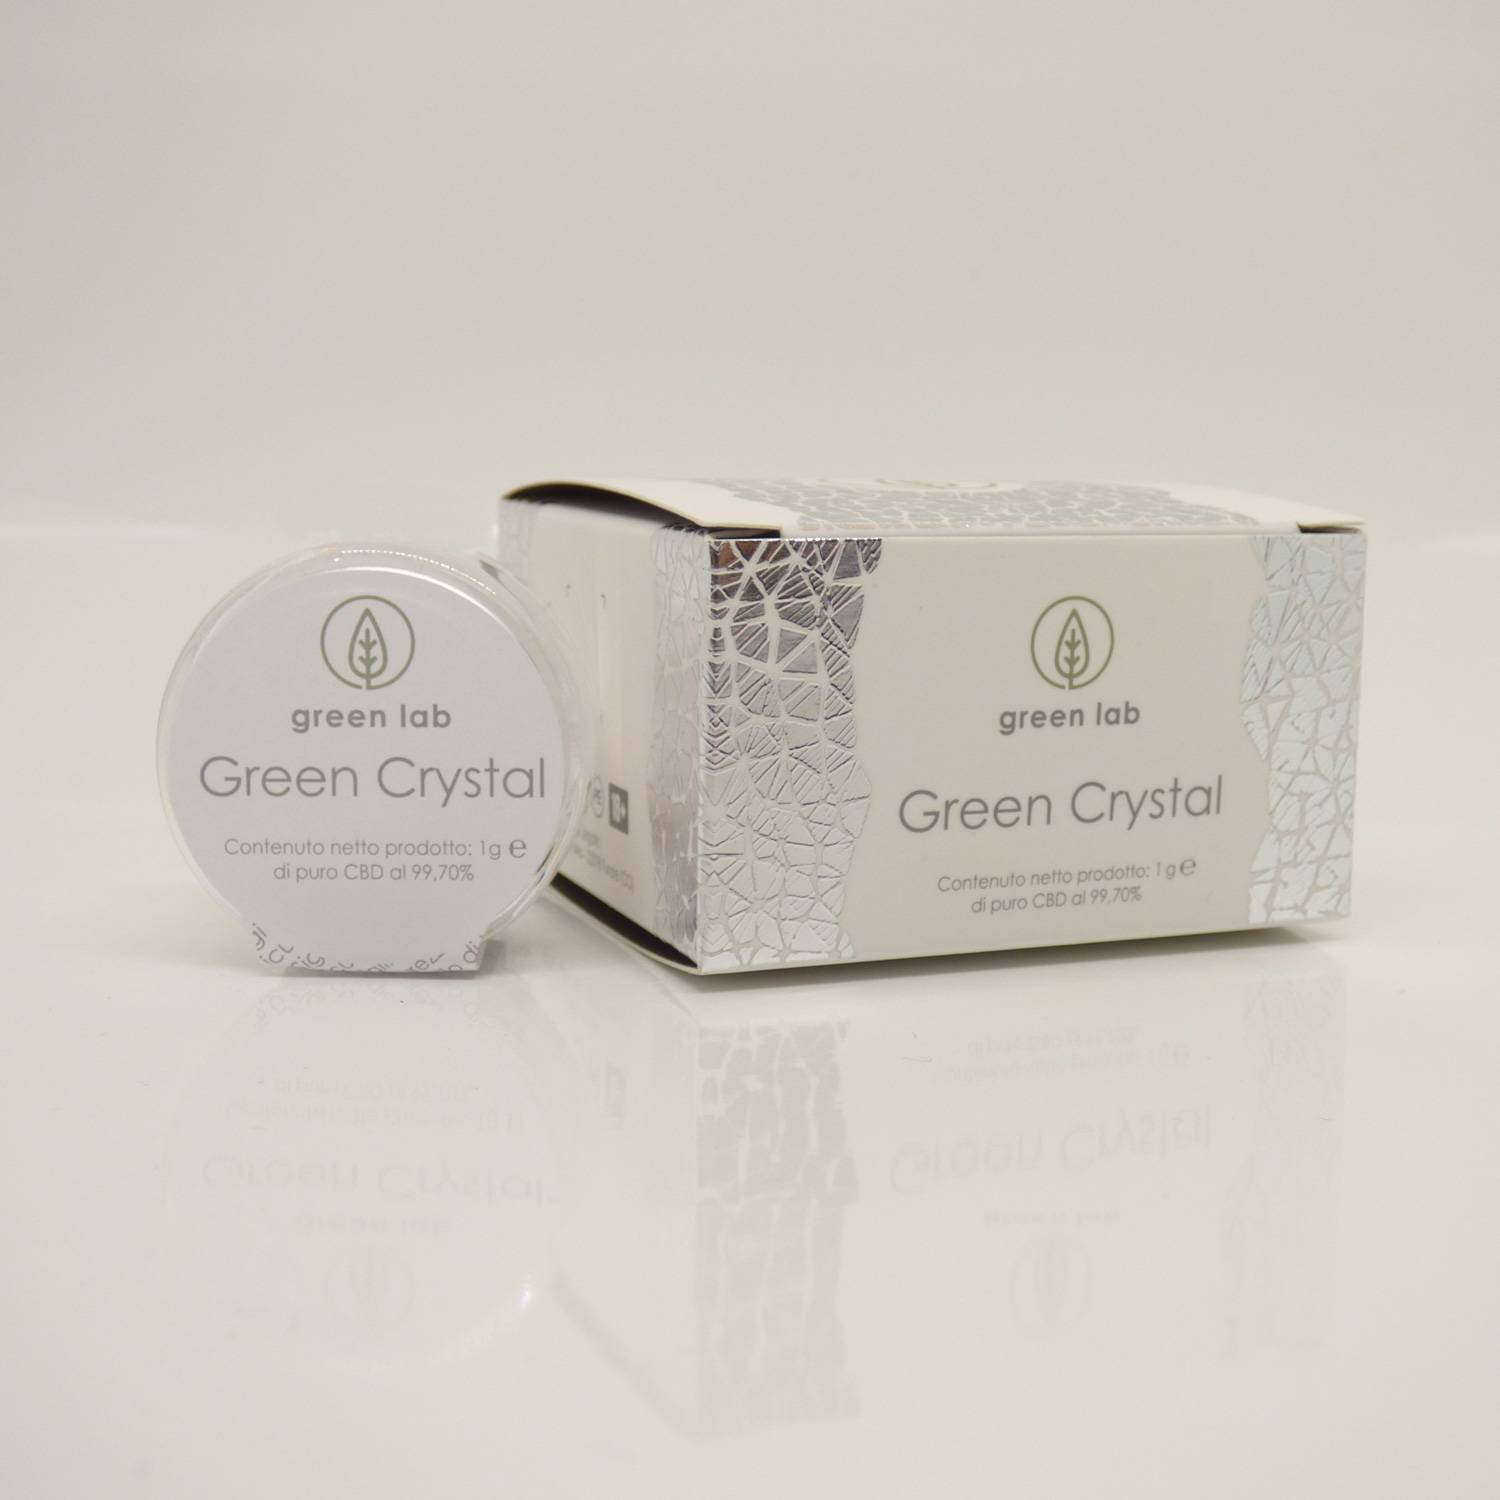 Green Lab Green Crystal 500 mg